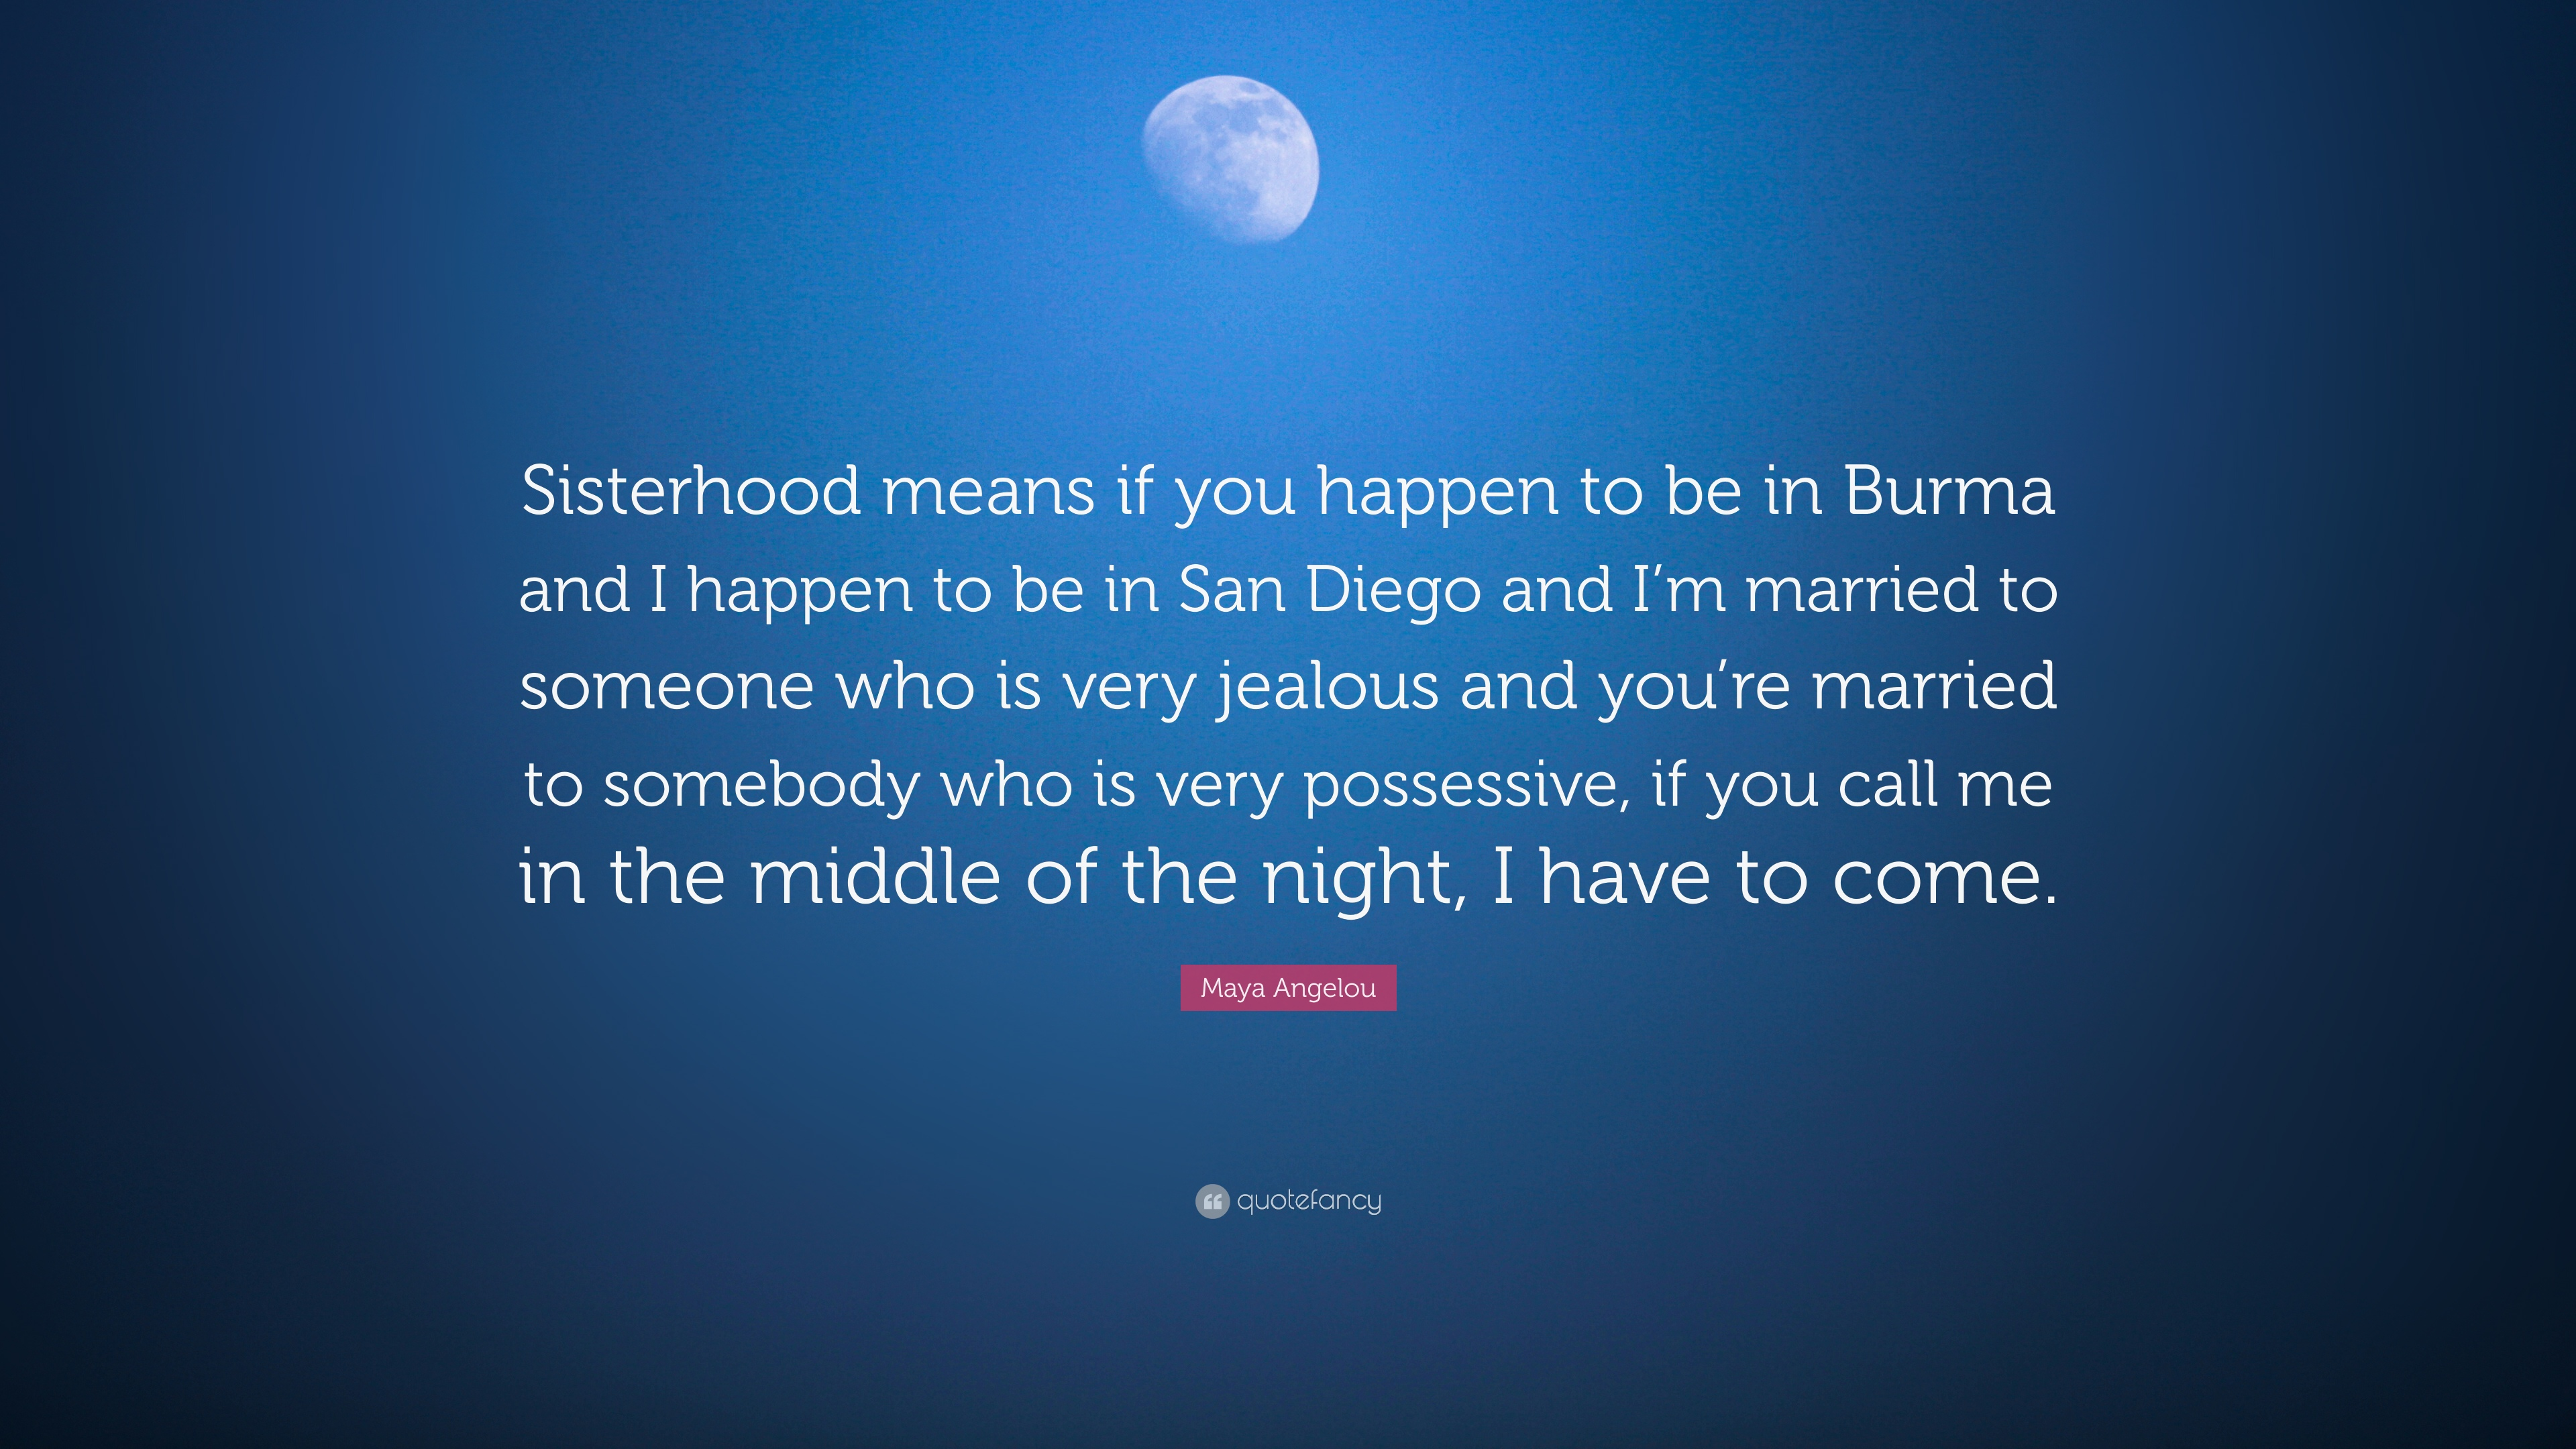 Maya Angelou Quote Sisterhood Means If You Happen To Be In Burma